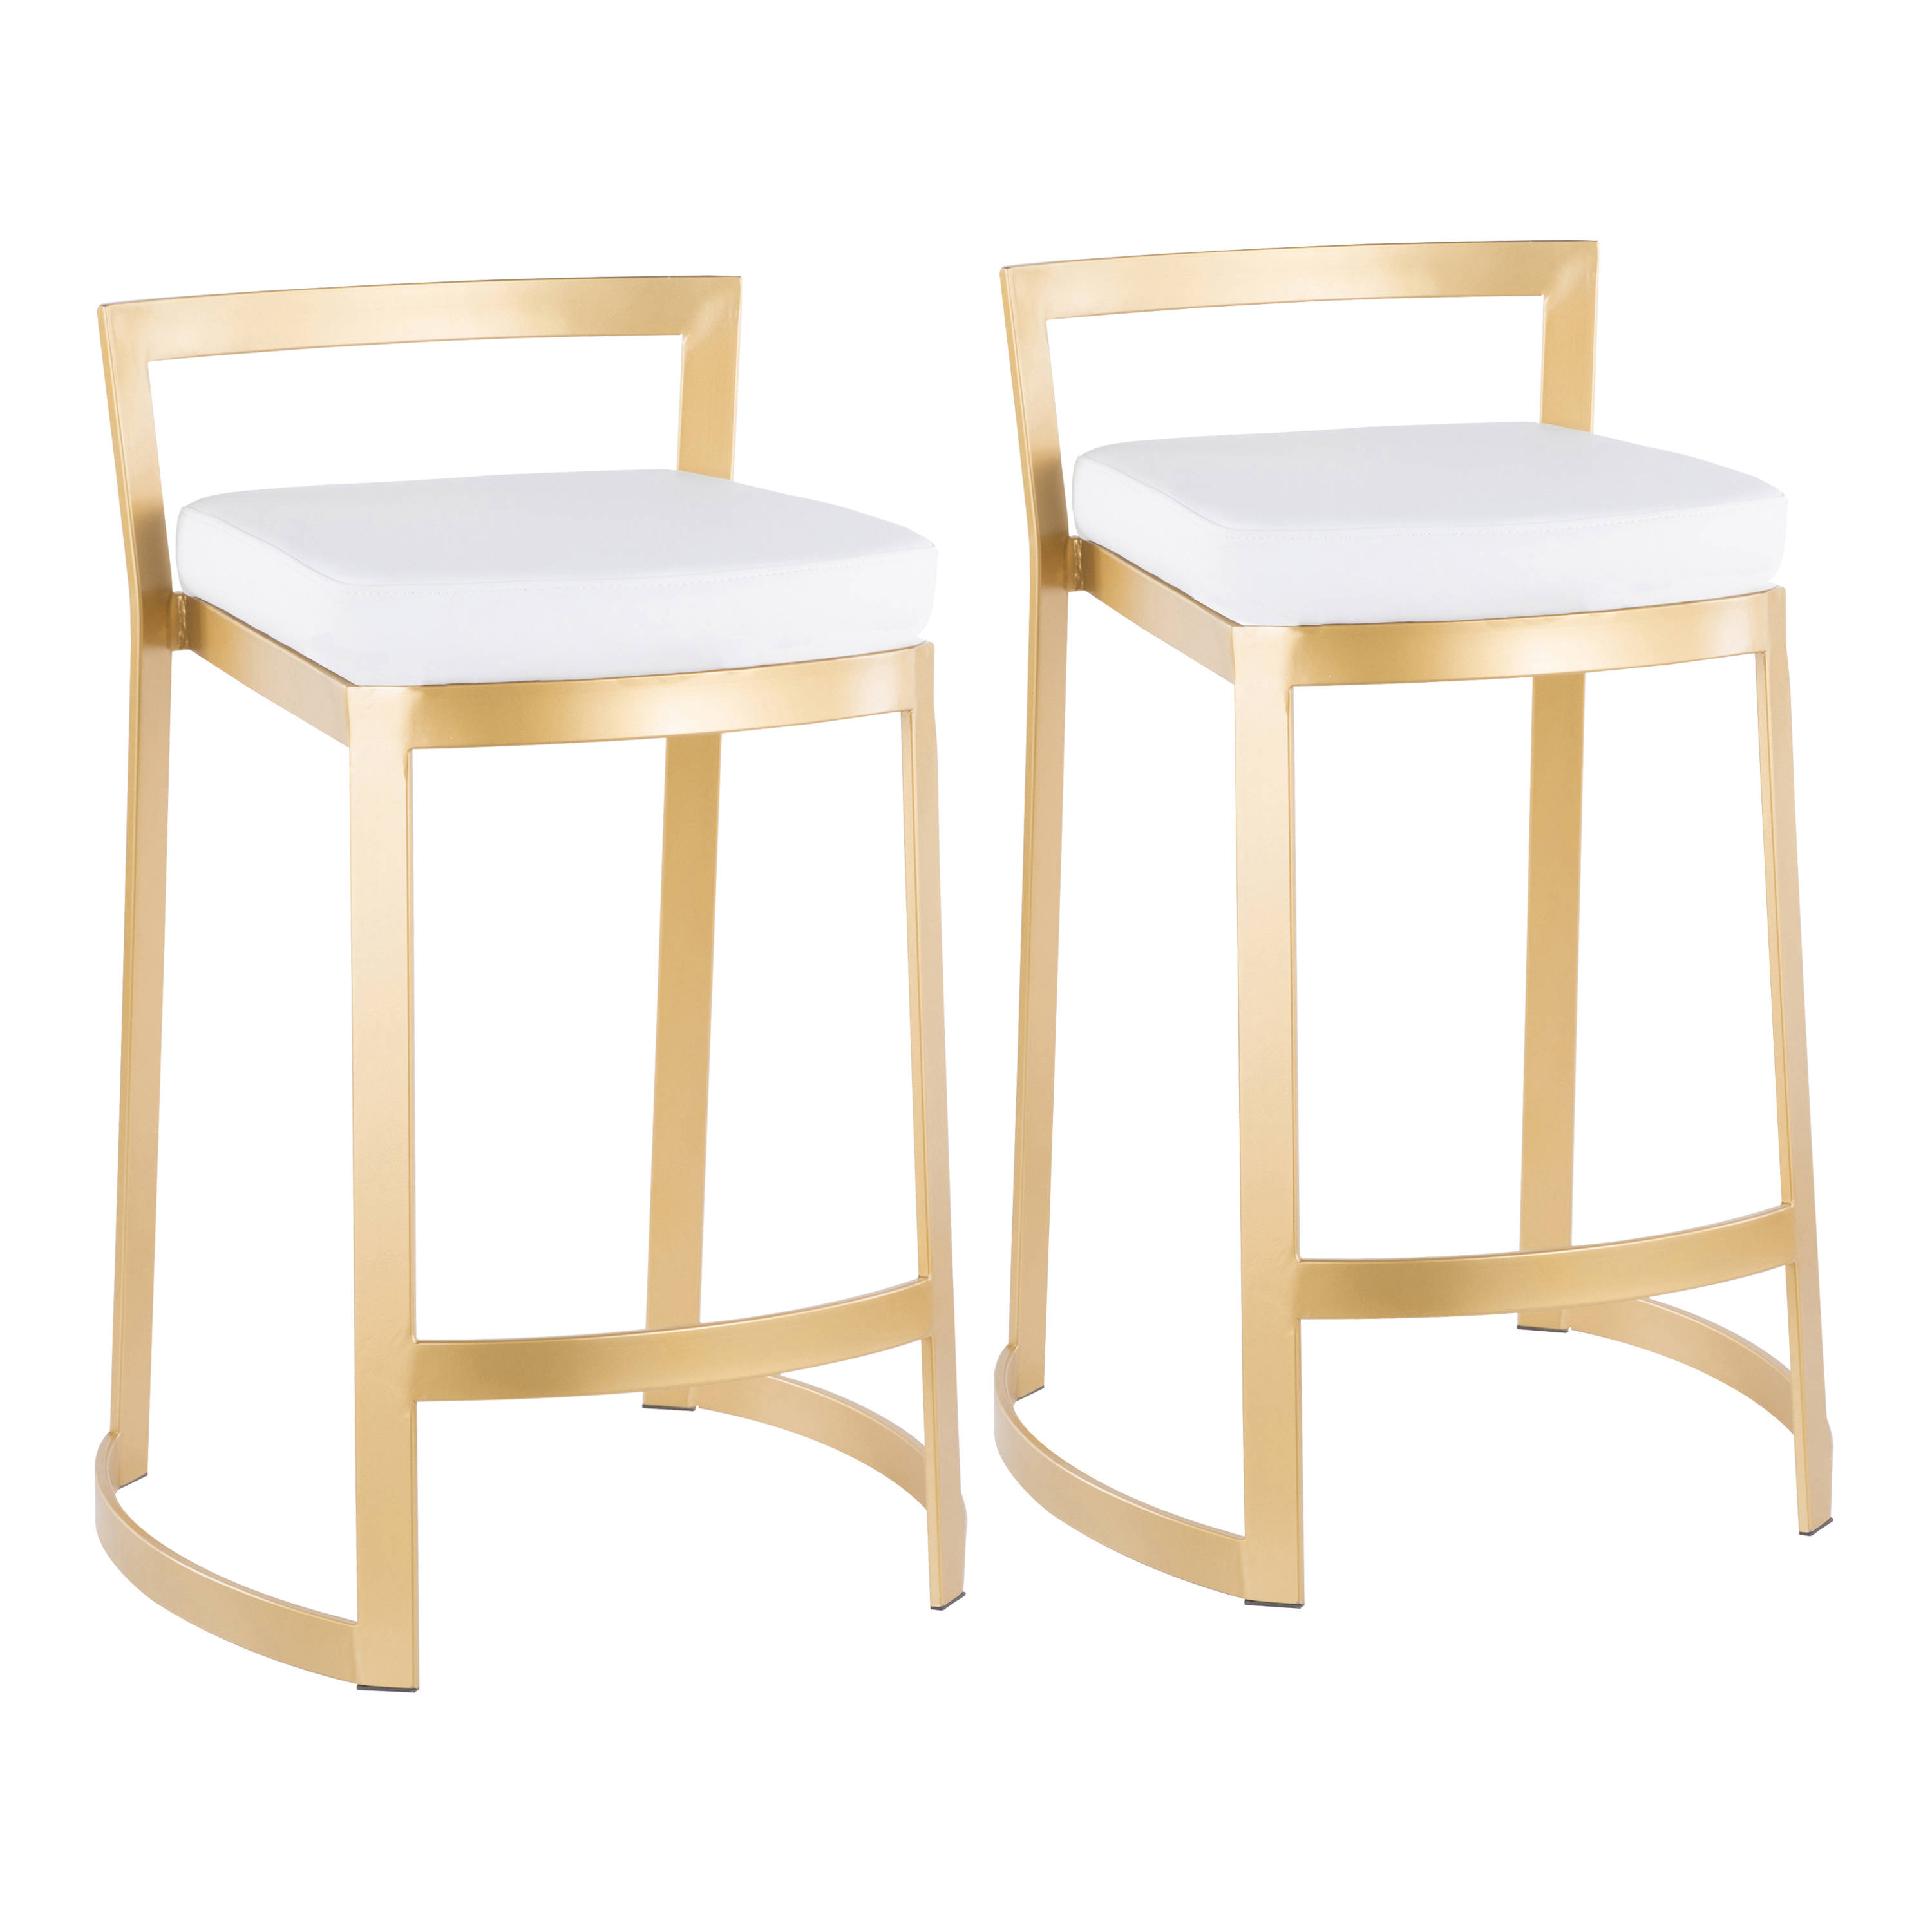 Tremendous 2 Lumisource Fuji Gold White Leather Counter Stools Theyellowbook Wood Chair Design Ideas Theyellowbookinfo